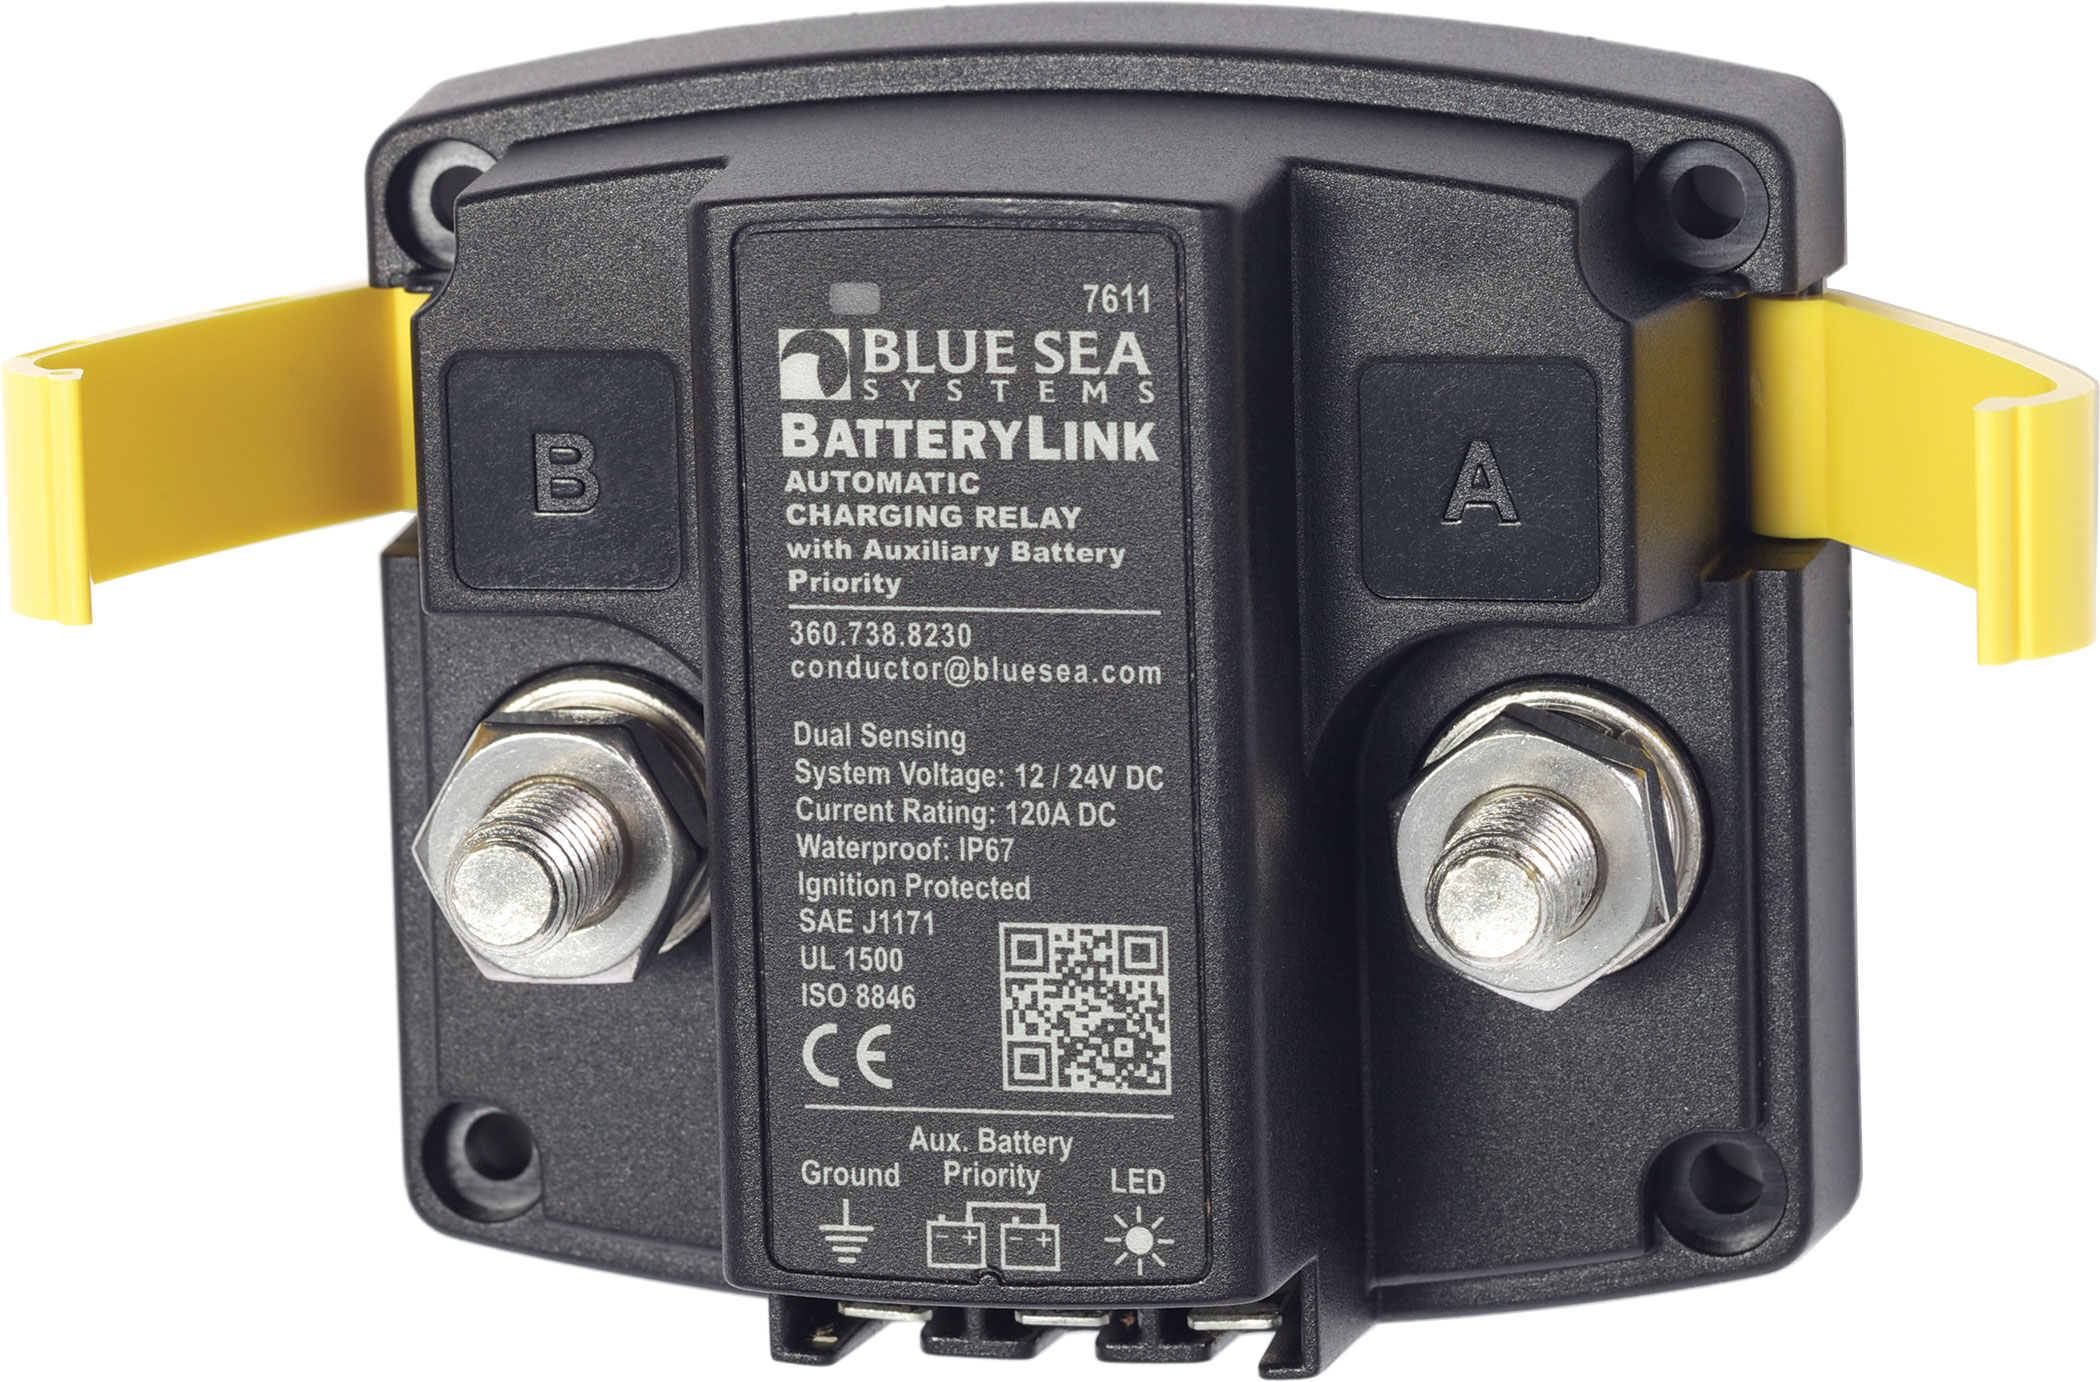 BatteryLink™ Automatic Charging Relay - 12V/24V DC 120A - Blue Sea on blue sea 7650 installation, blue sea fuse block wiring diagram, carolina skiff diagram, blue sea acr with two engines, blue sea battery selector wiring,